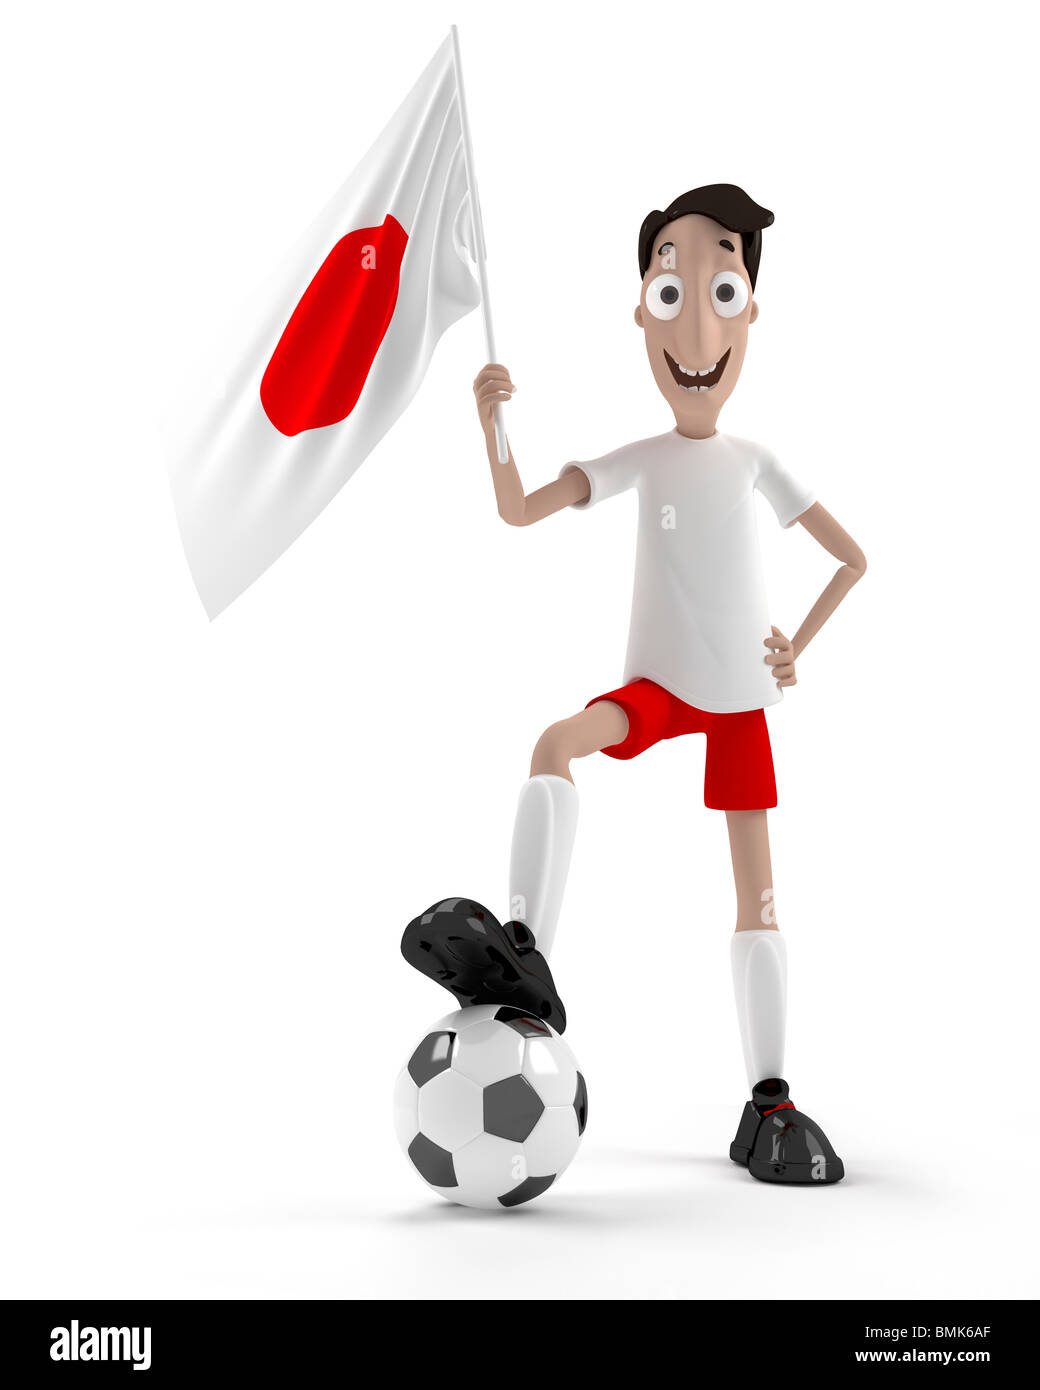 Smiling cartoon style soccer player with ball and Japan flag Stock Photo